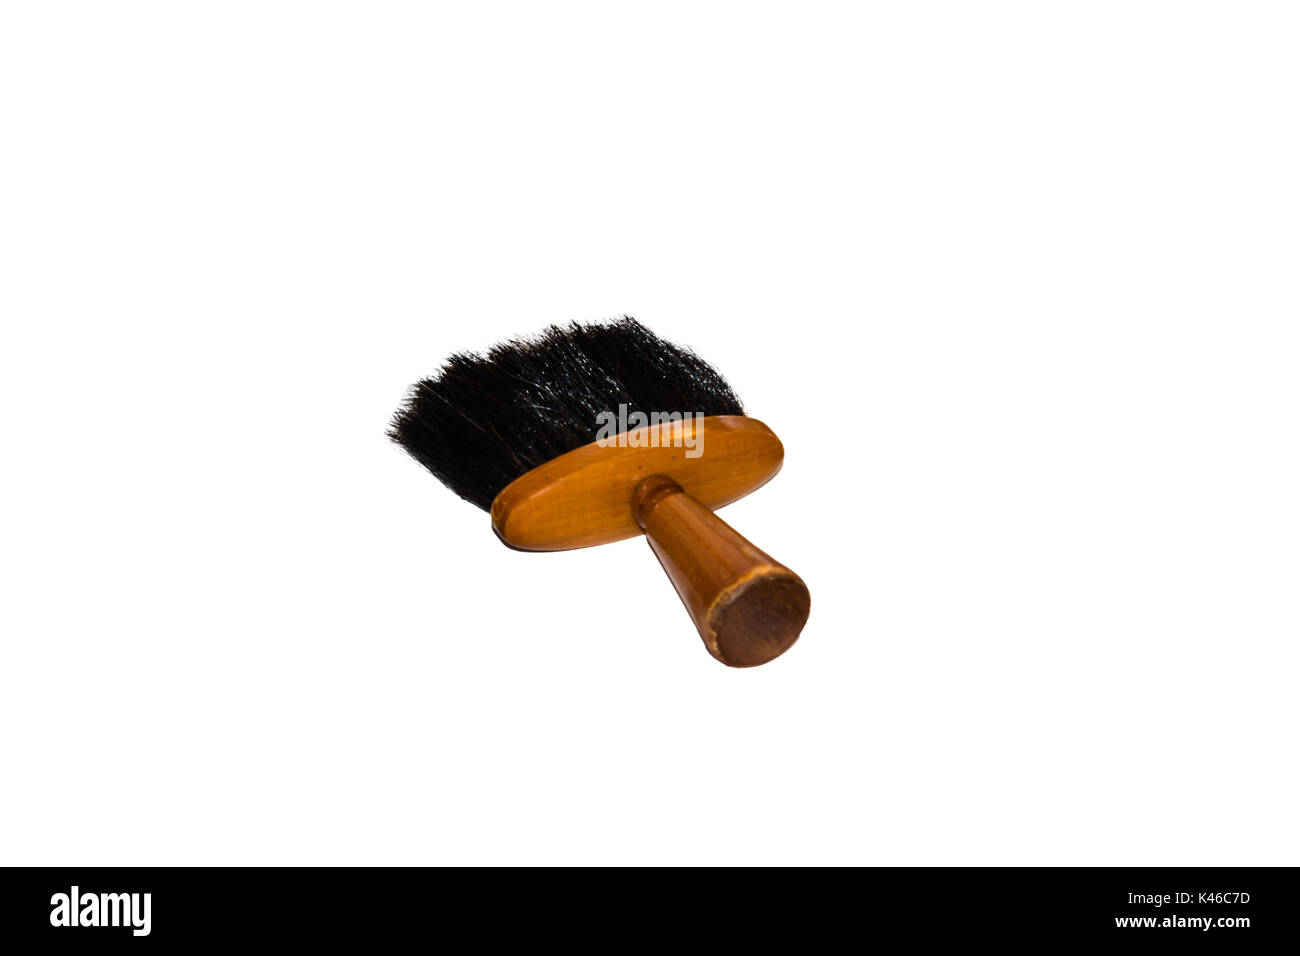 Hairdressing accessories, Professional soft brush for neck and face on white background. - Stock Image